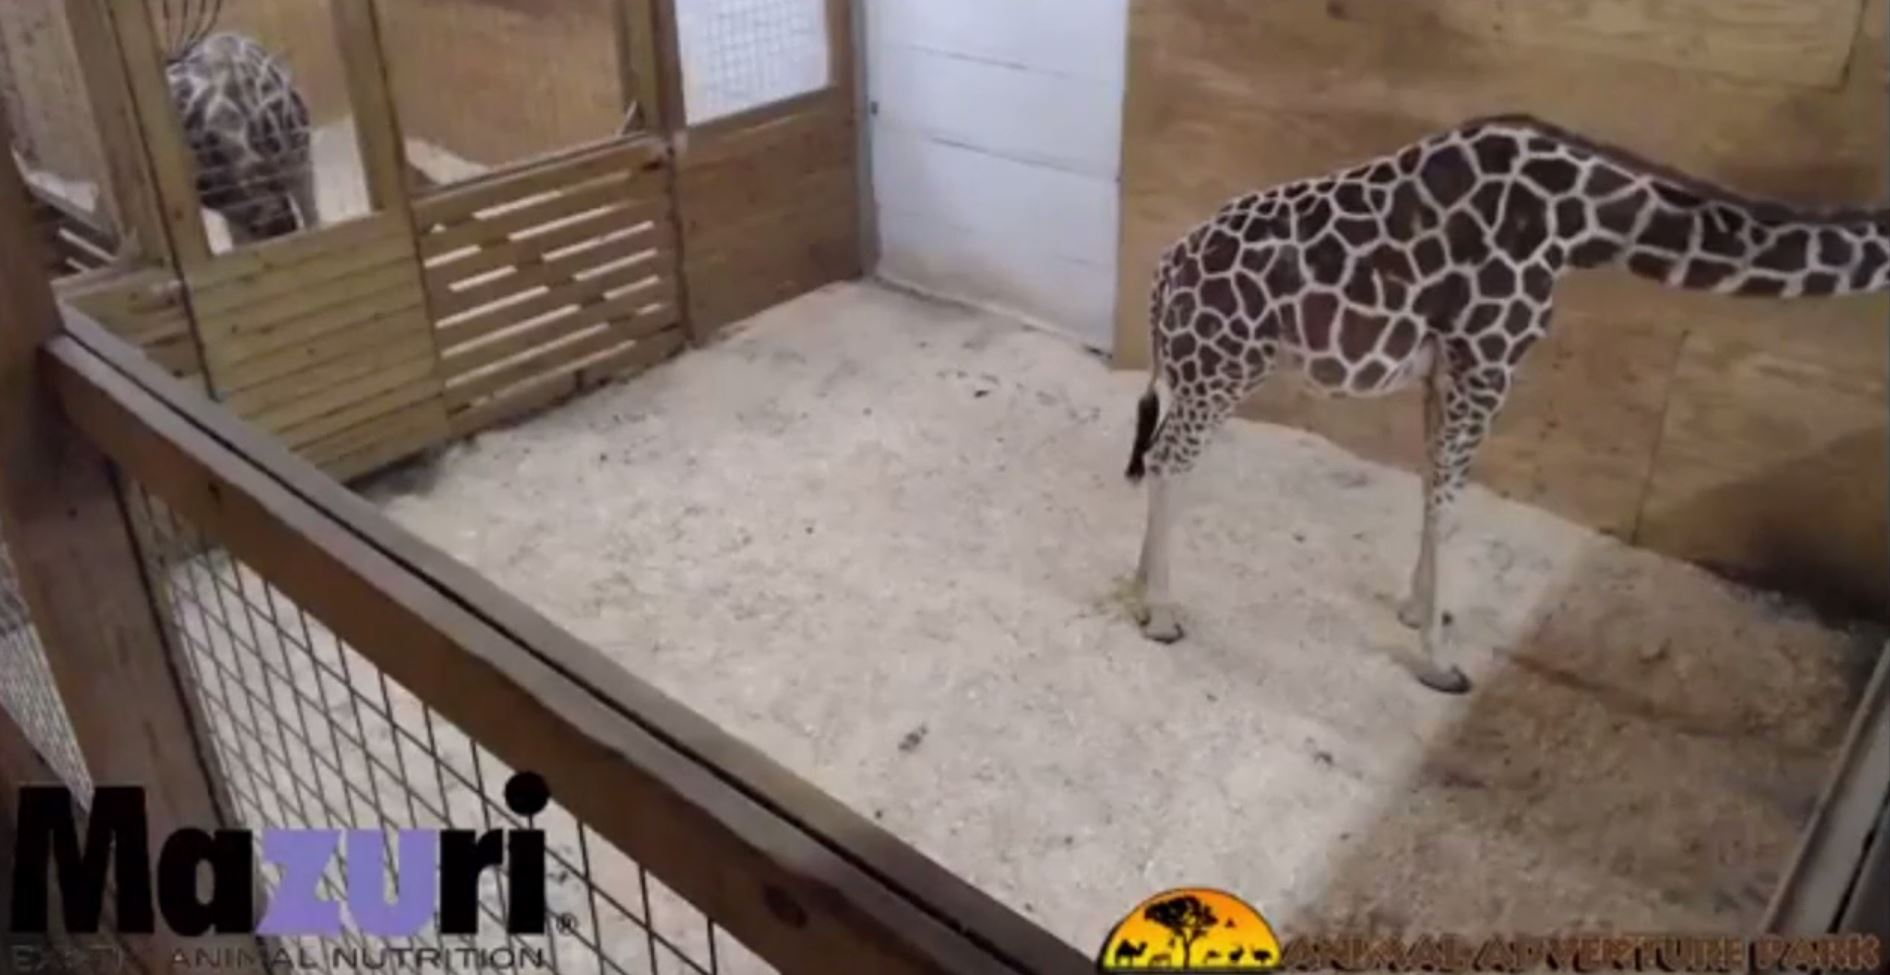 April the giraffe live cam youtube - April The Giraffe Live Cam Youtube 42